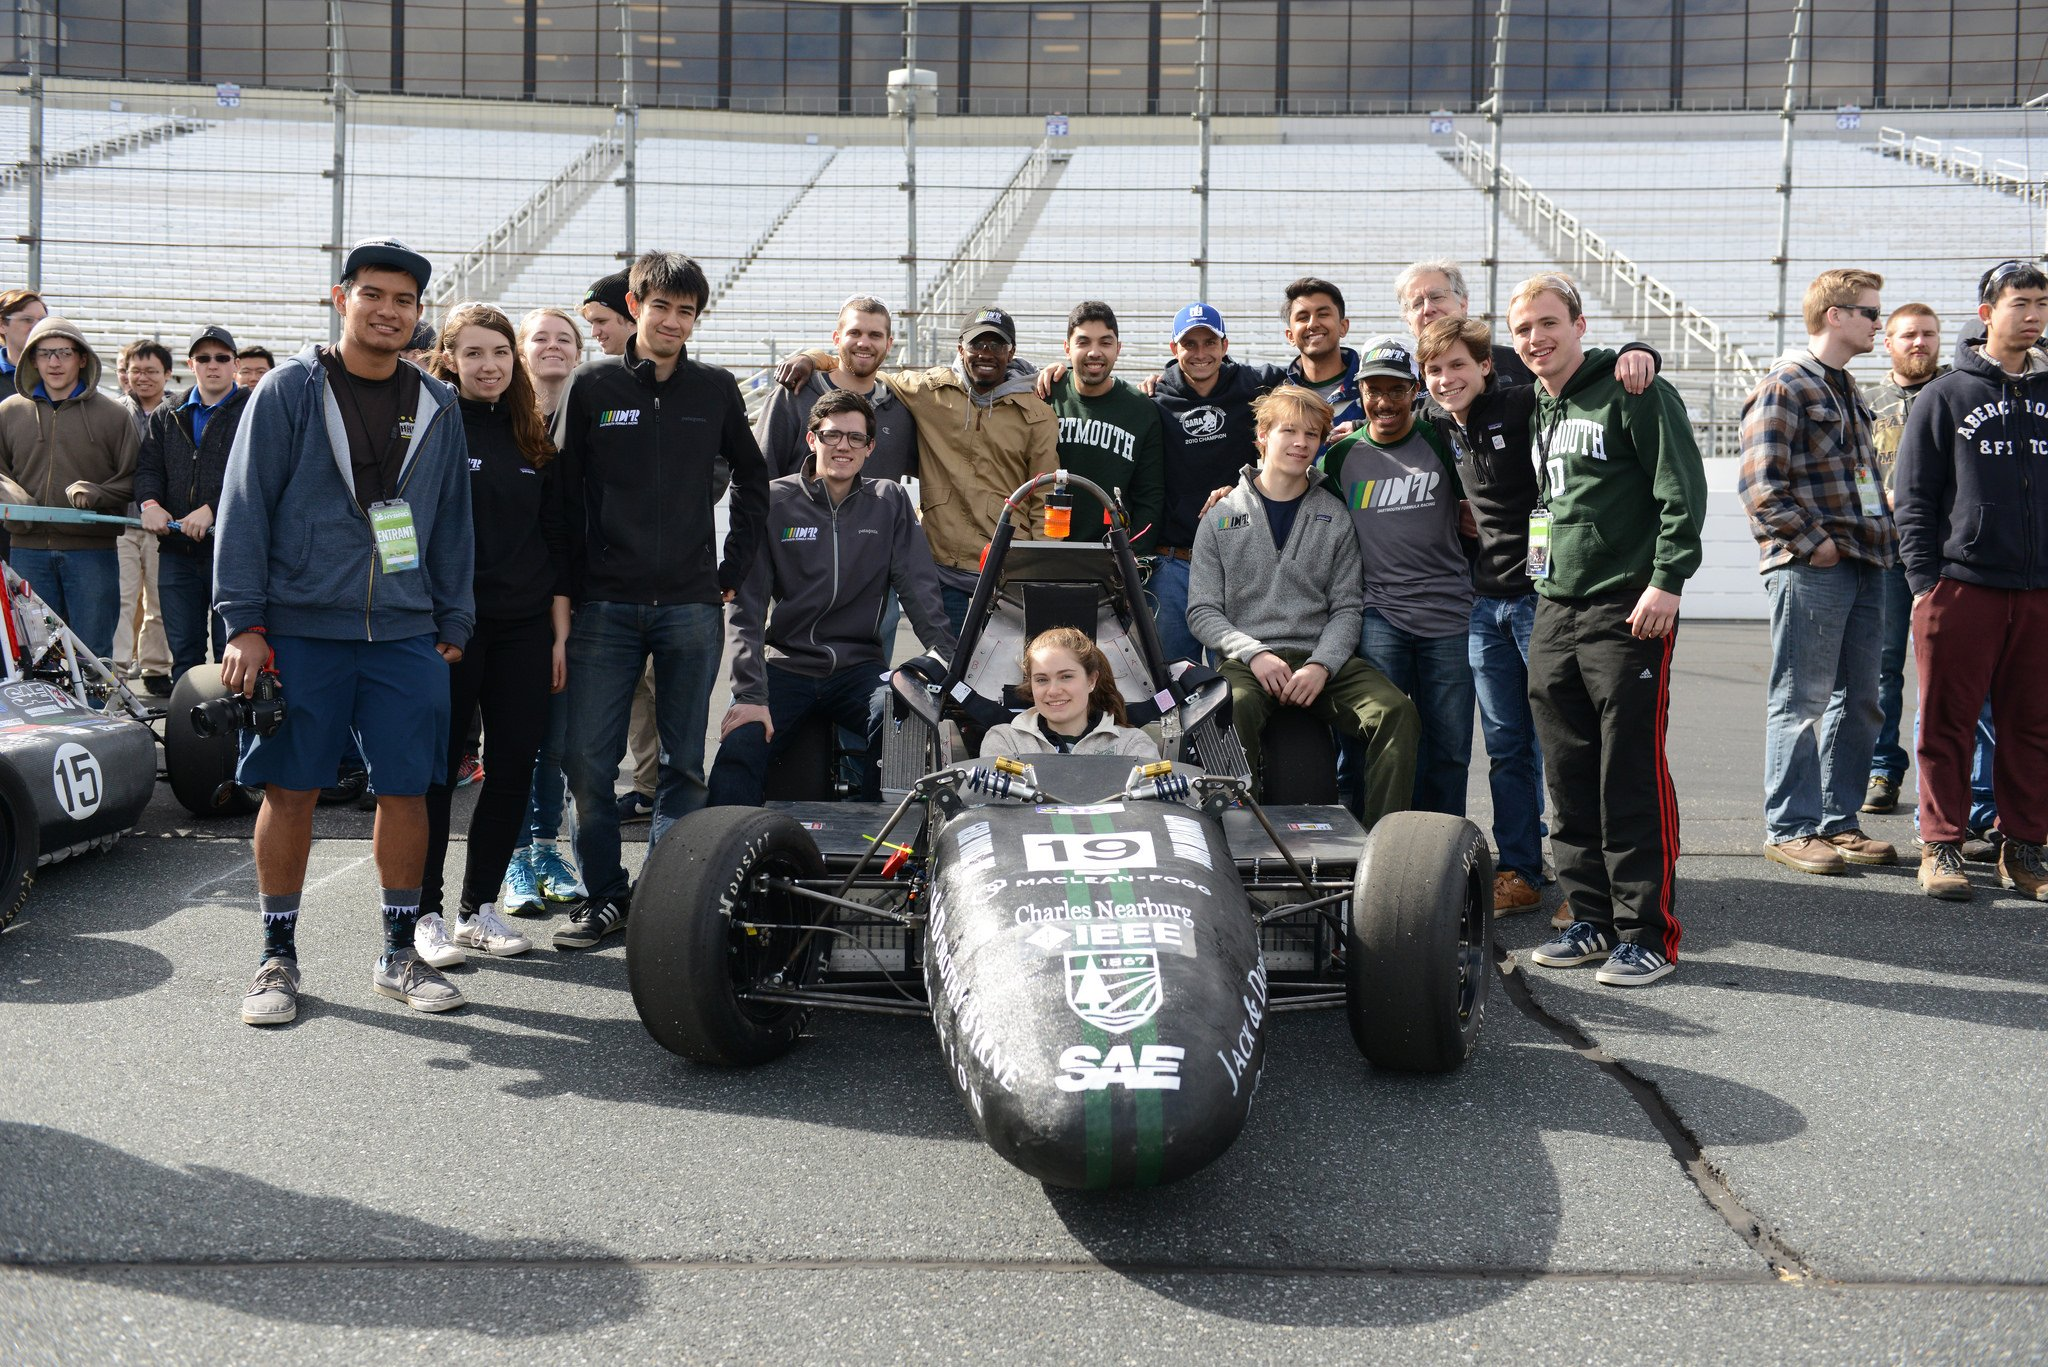 Congrats to @dartmouthracing for taking 4th in hybrid at #formulahybrid17! @dartmouth @thedartmouth @GraniteGeek https://t.co/cqELCrPVBq